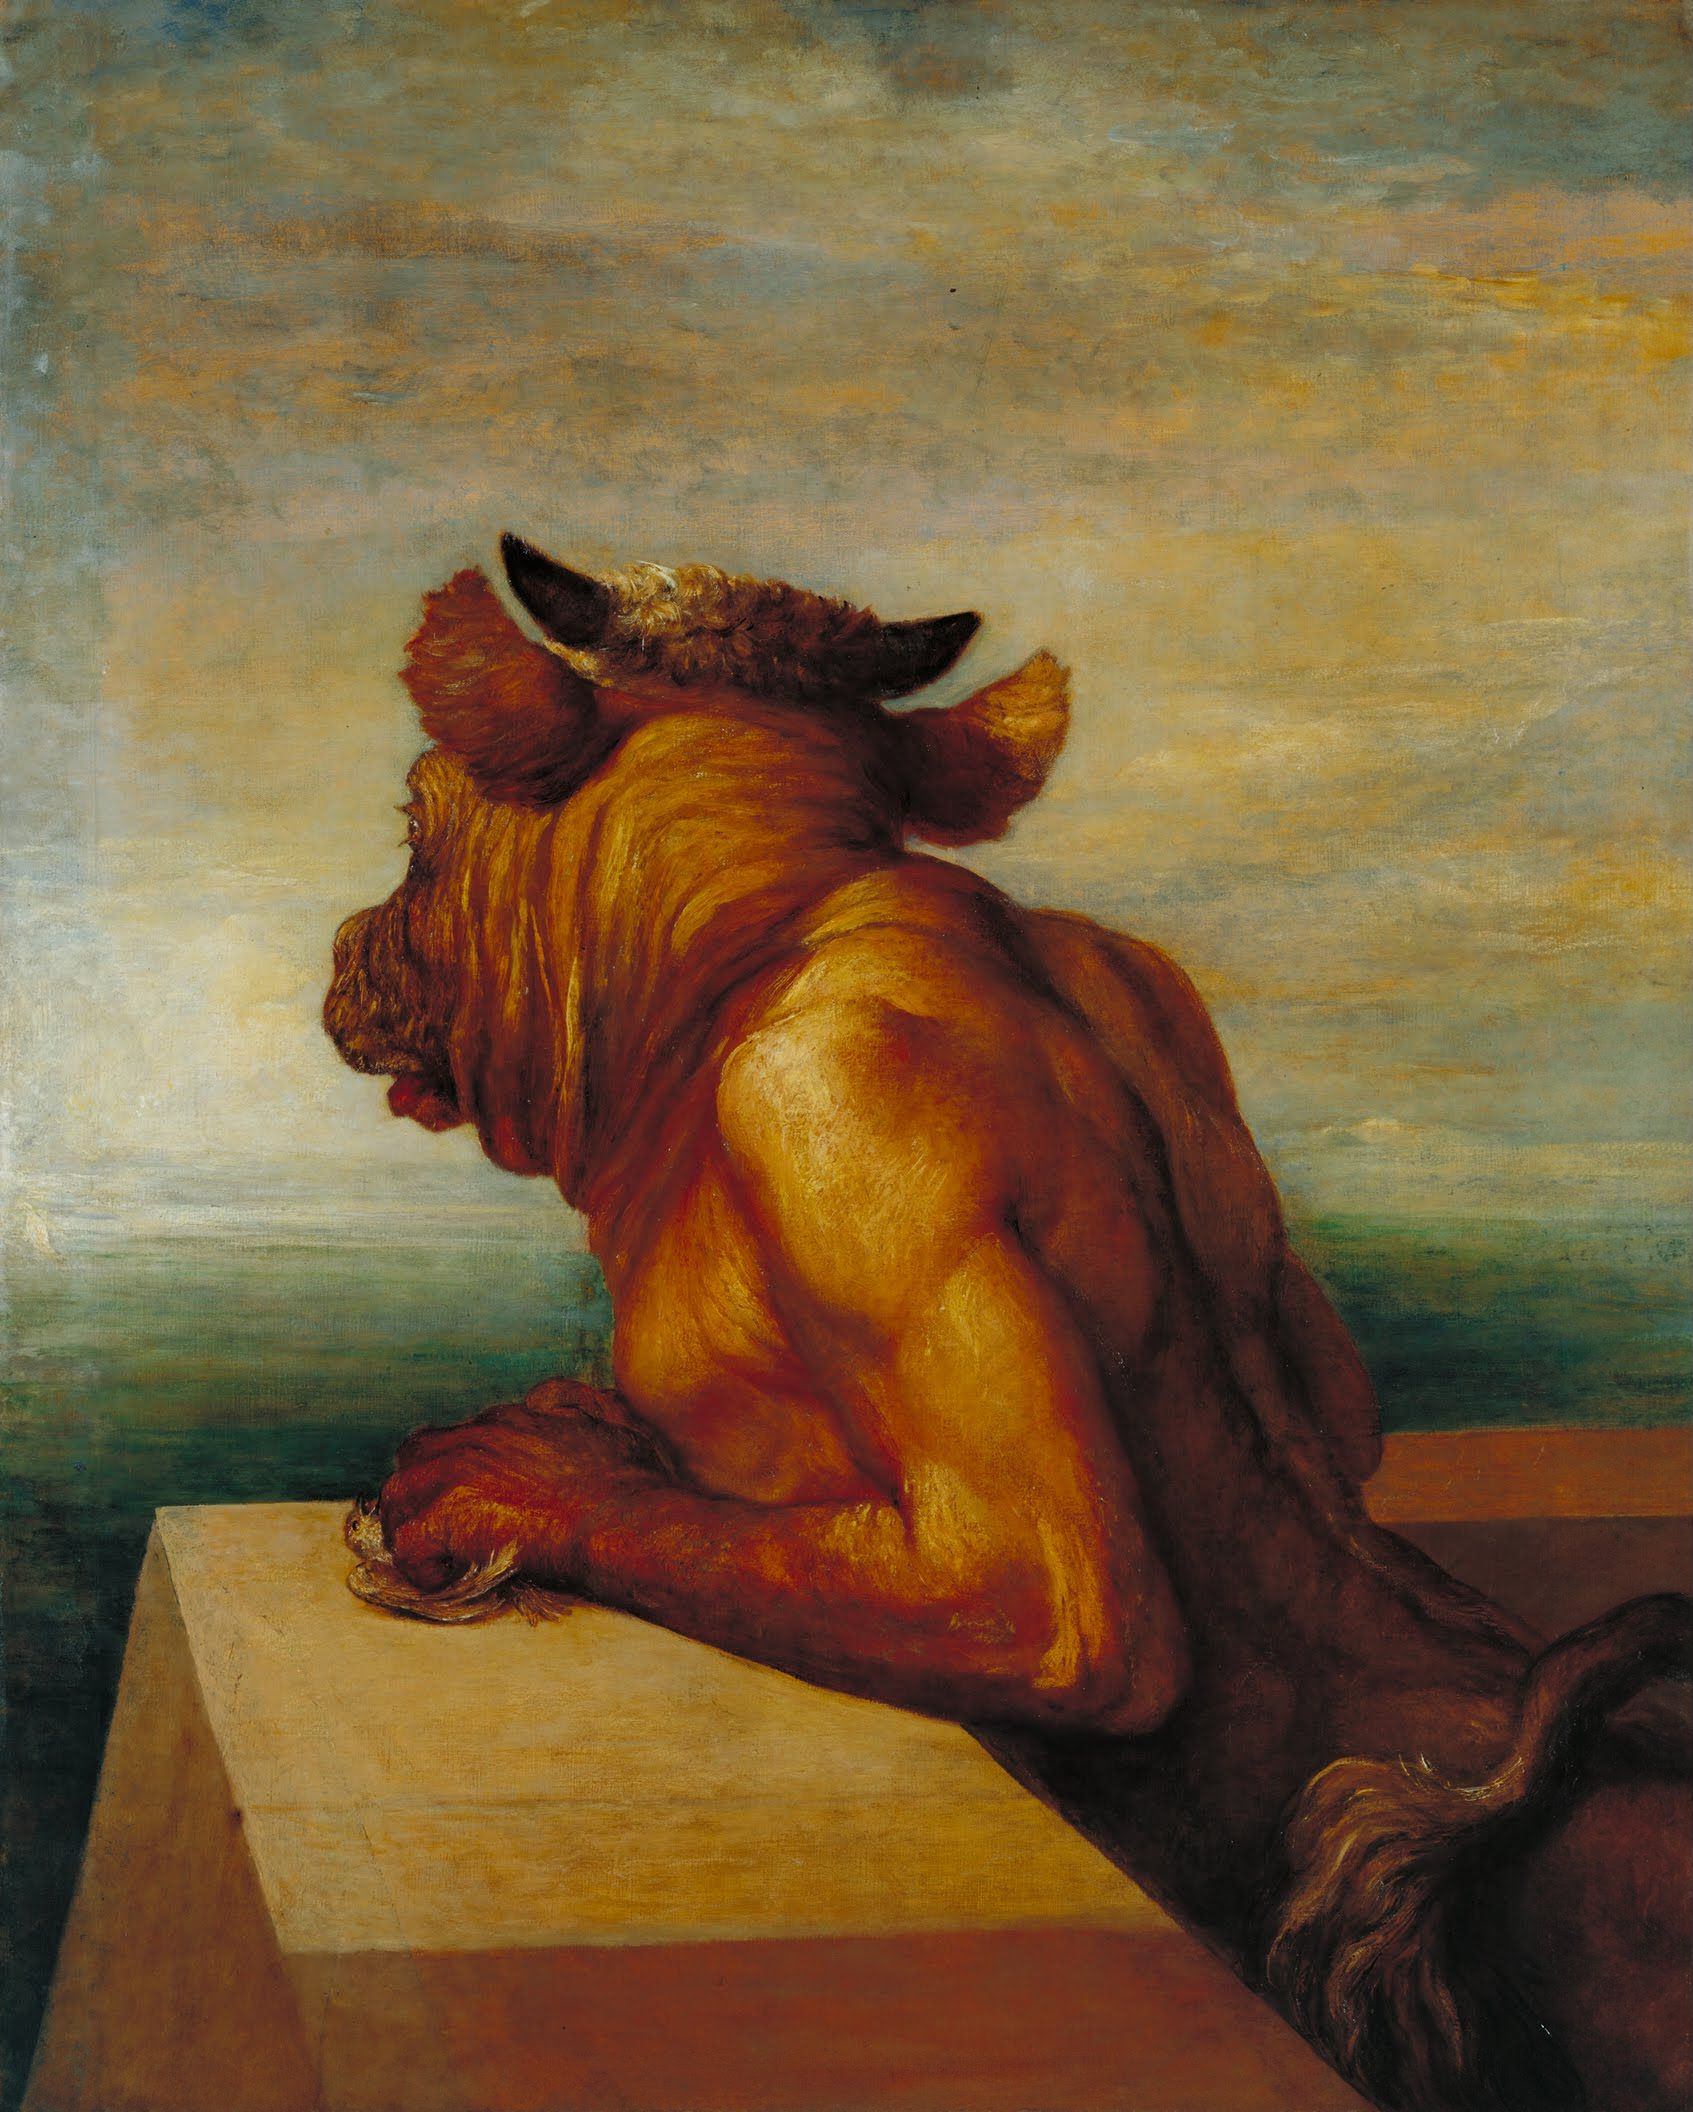 George Frederic Watts The Minotaur (1885) ©Tate Gallery, Londra